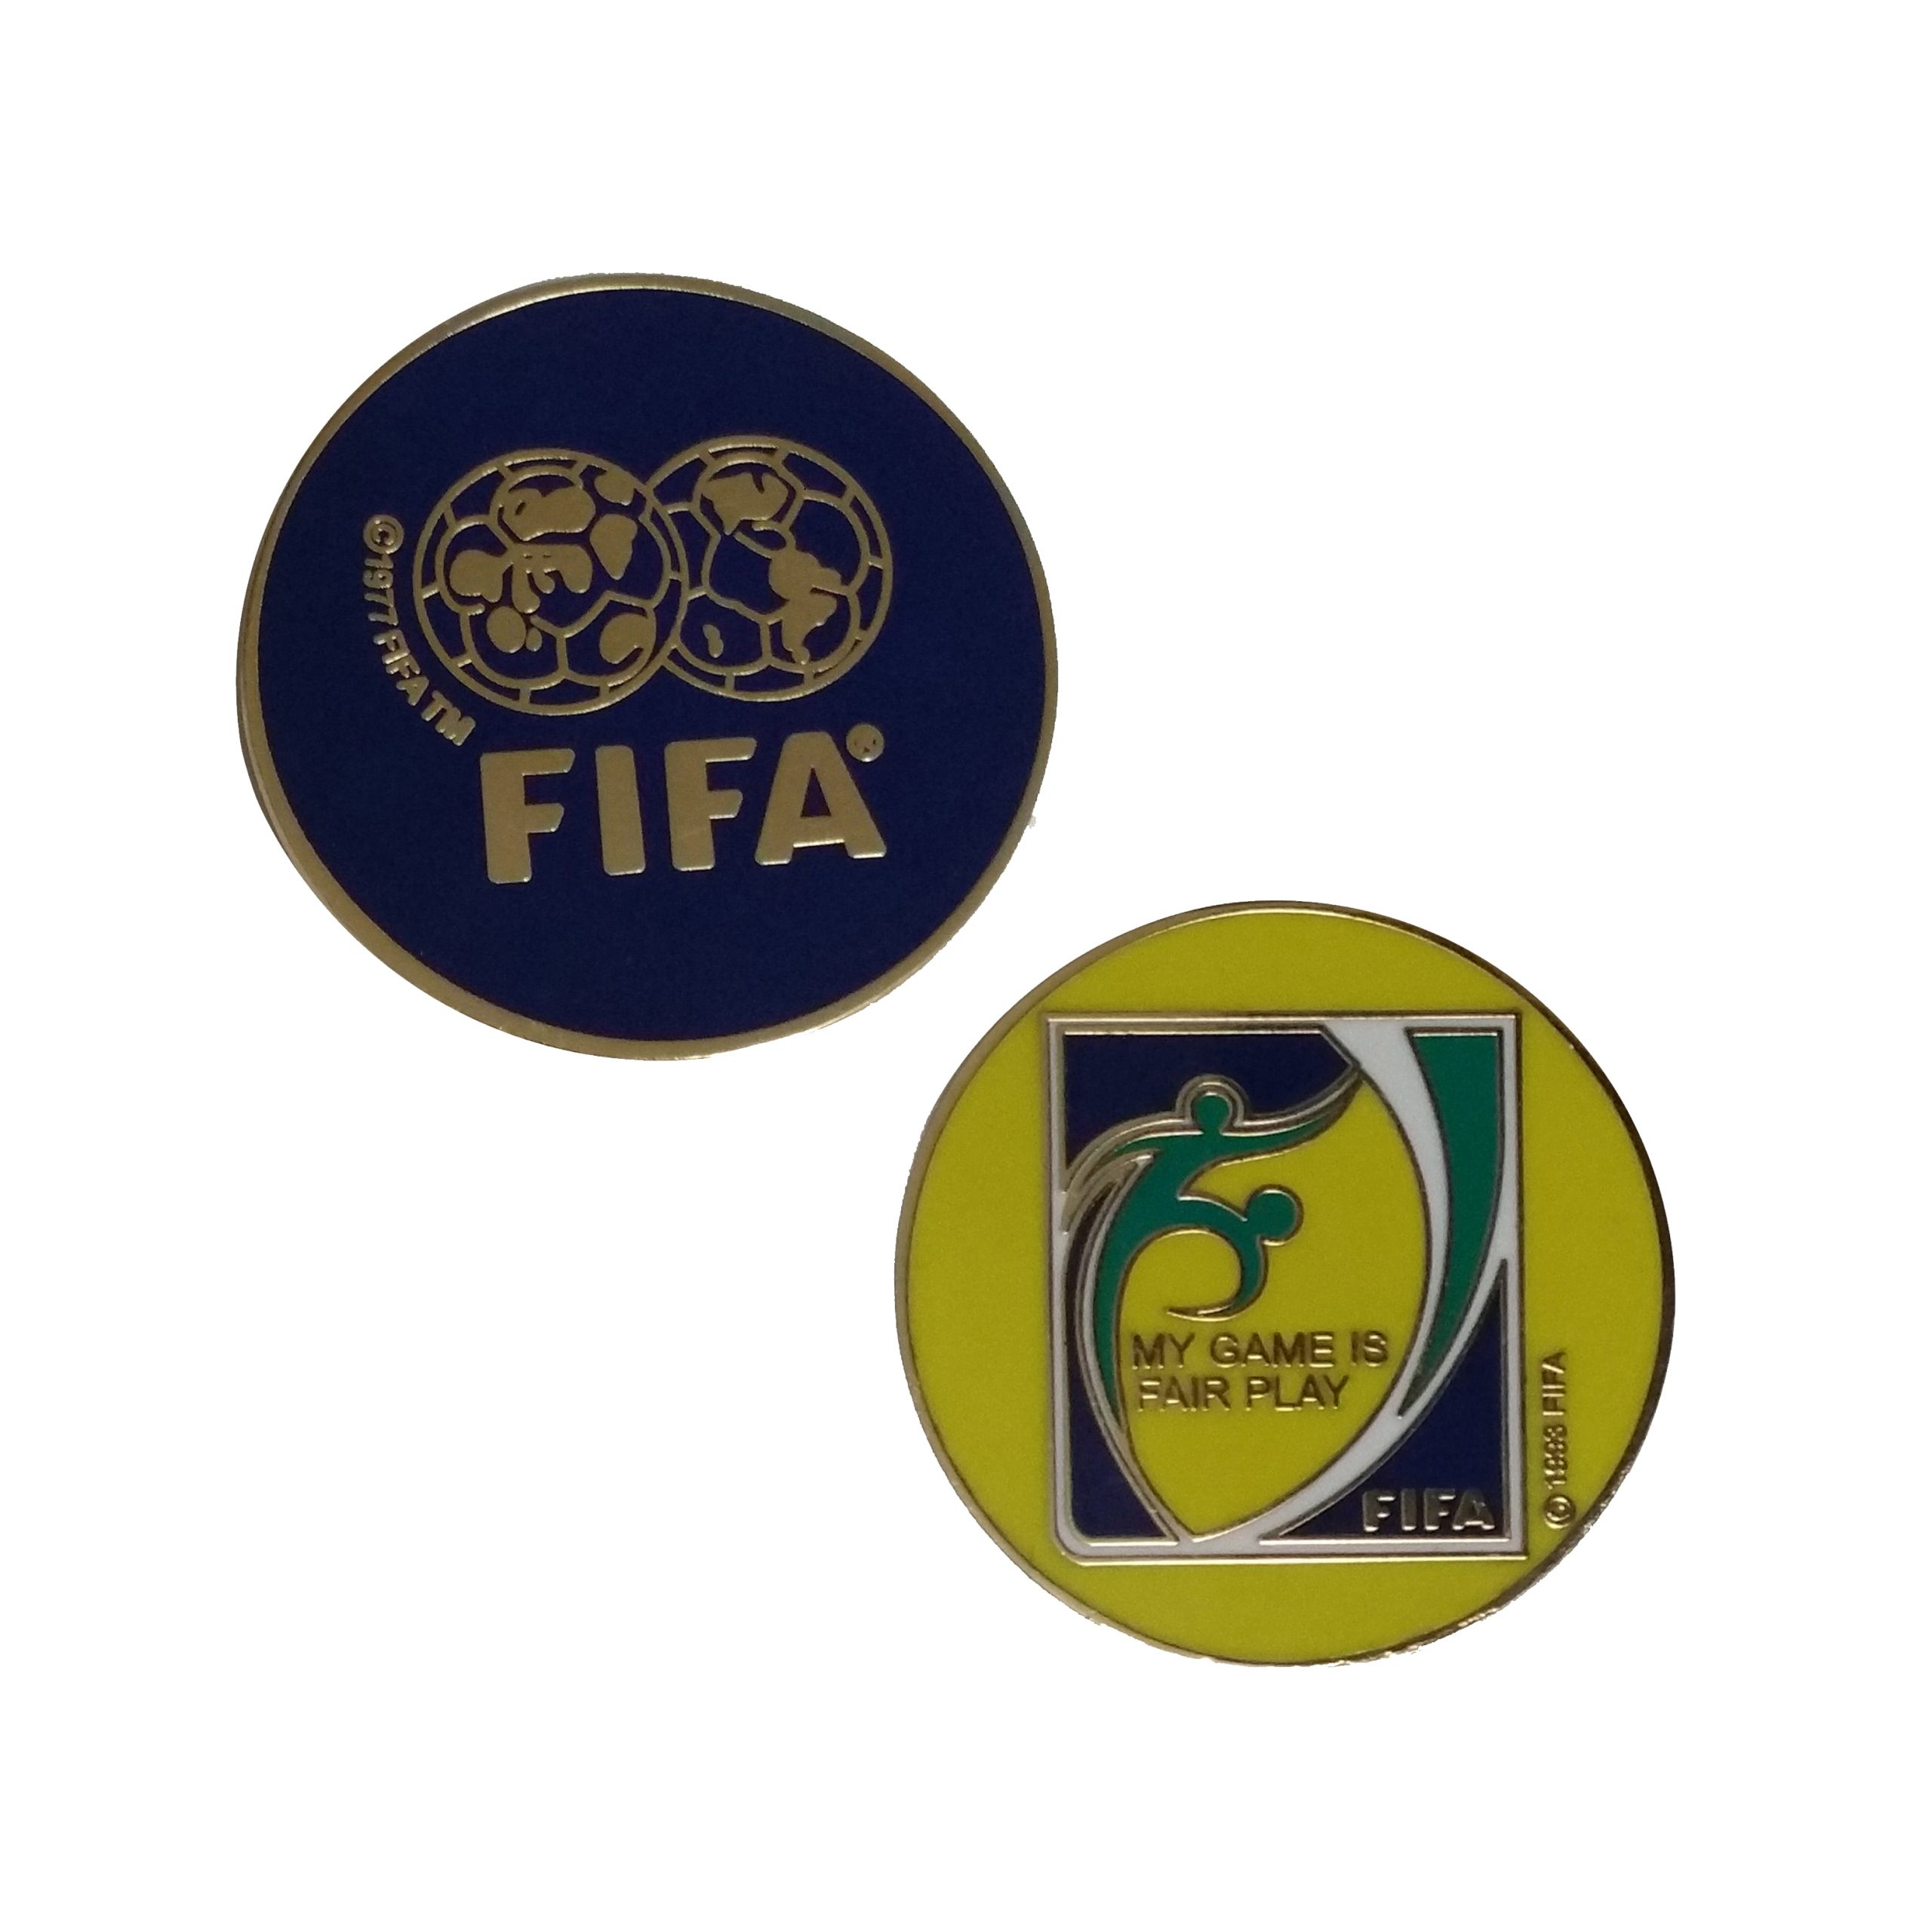 Fifa football soccer referee wallet with red and yellow cards buxton business card credit card case wallet 999 magicingreecefo Gallery